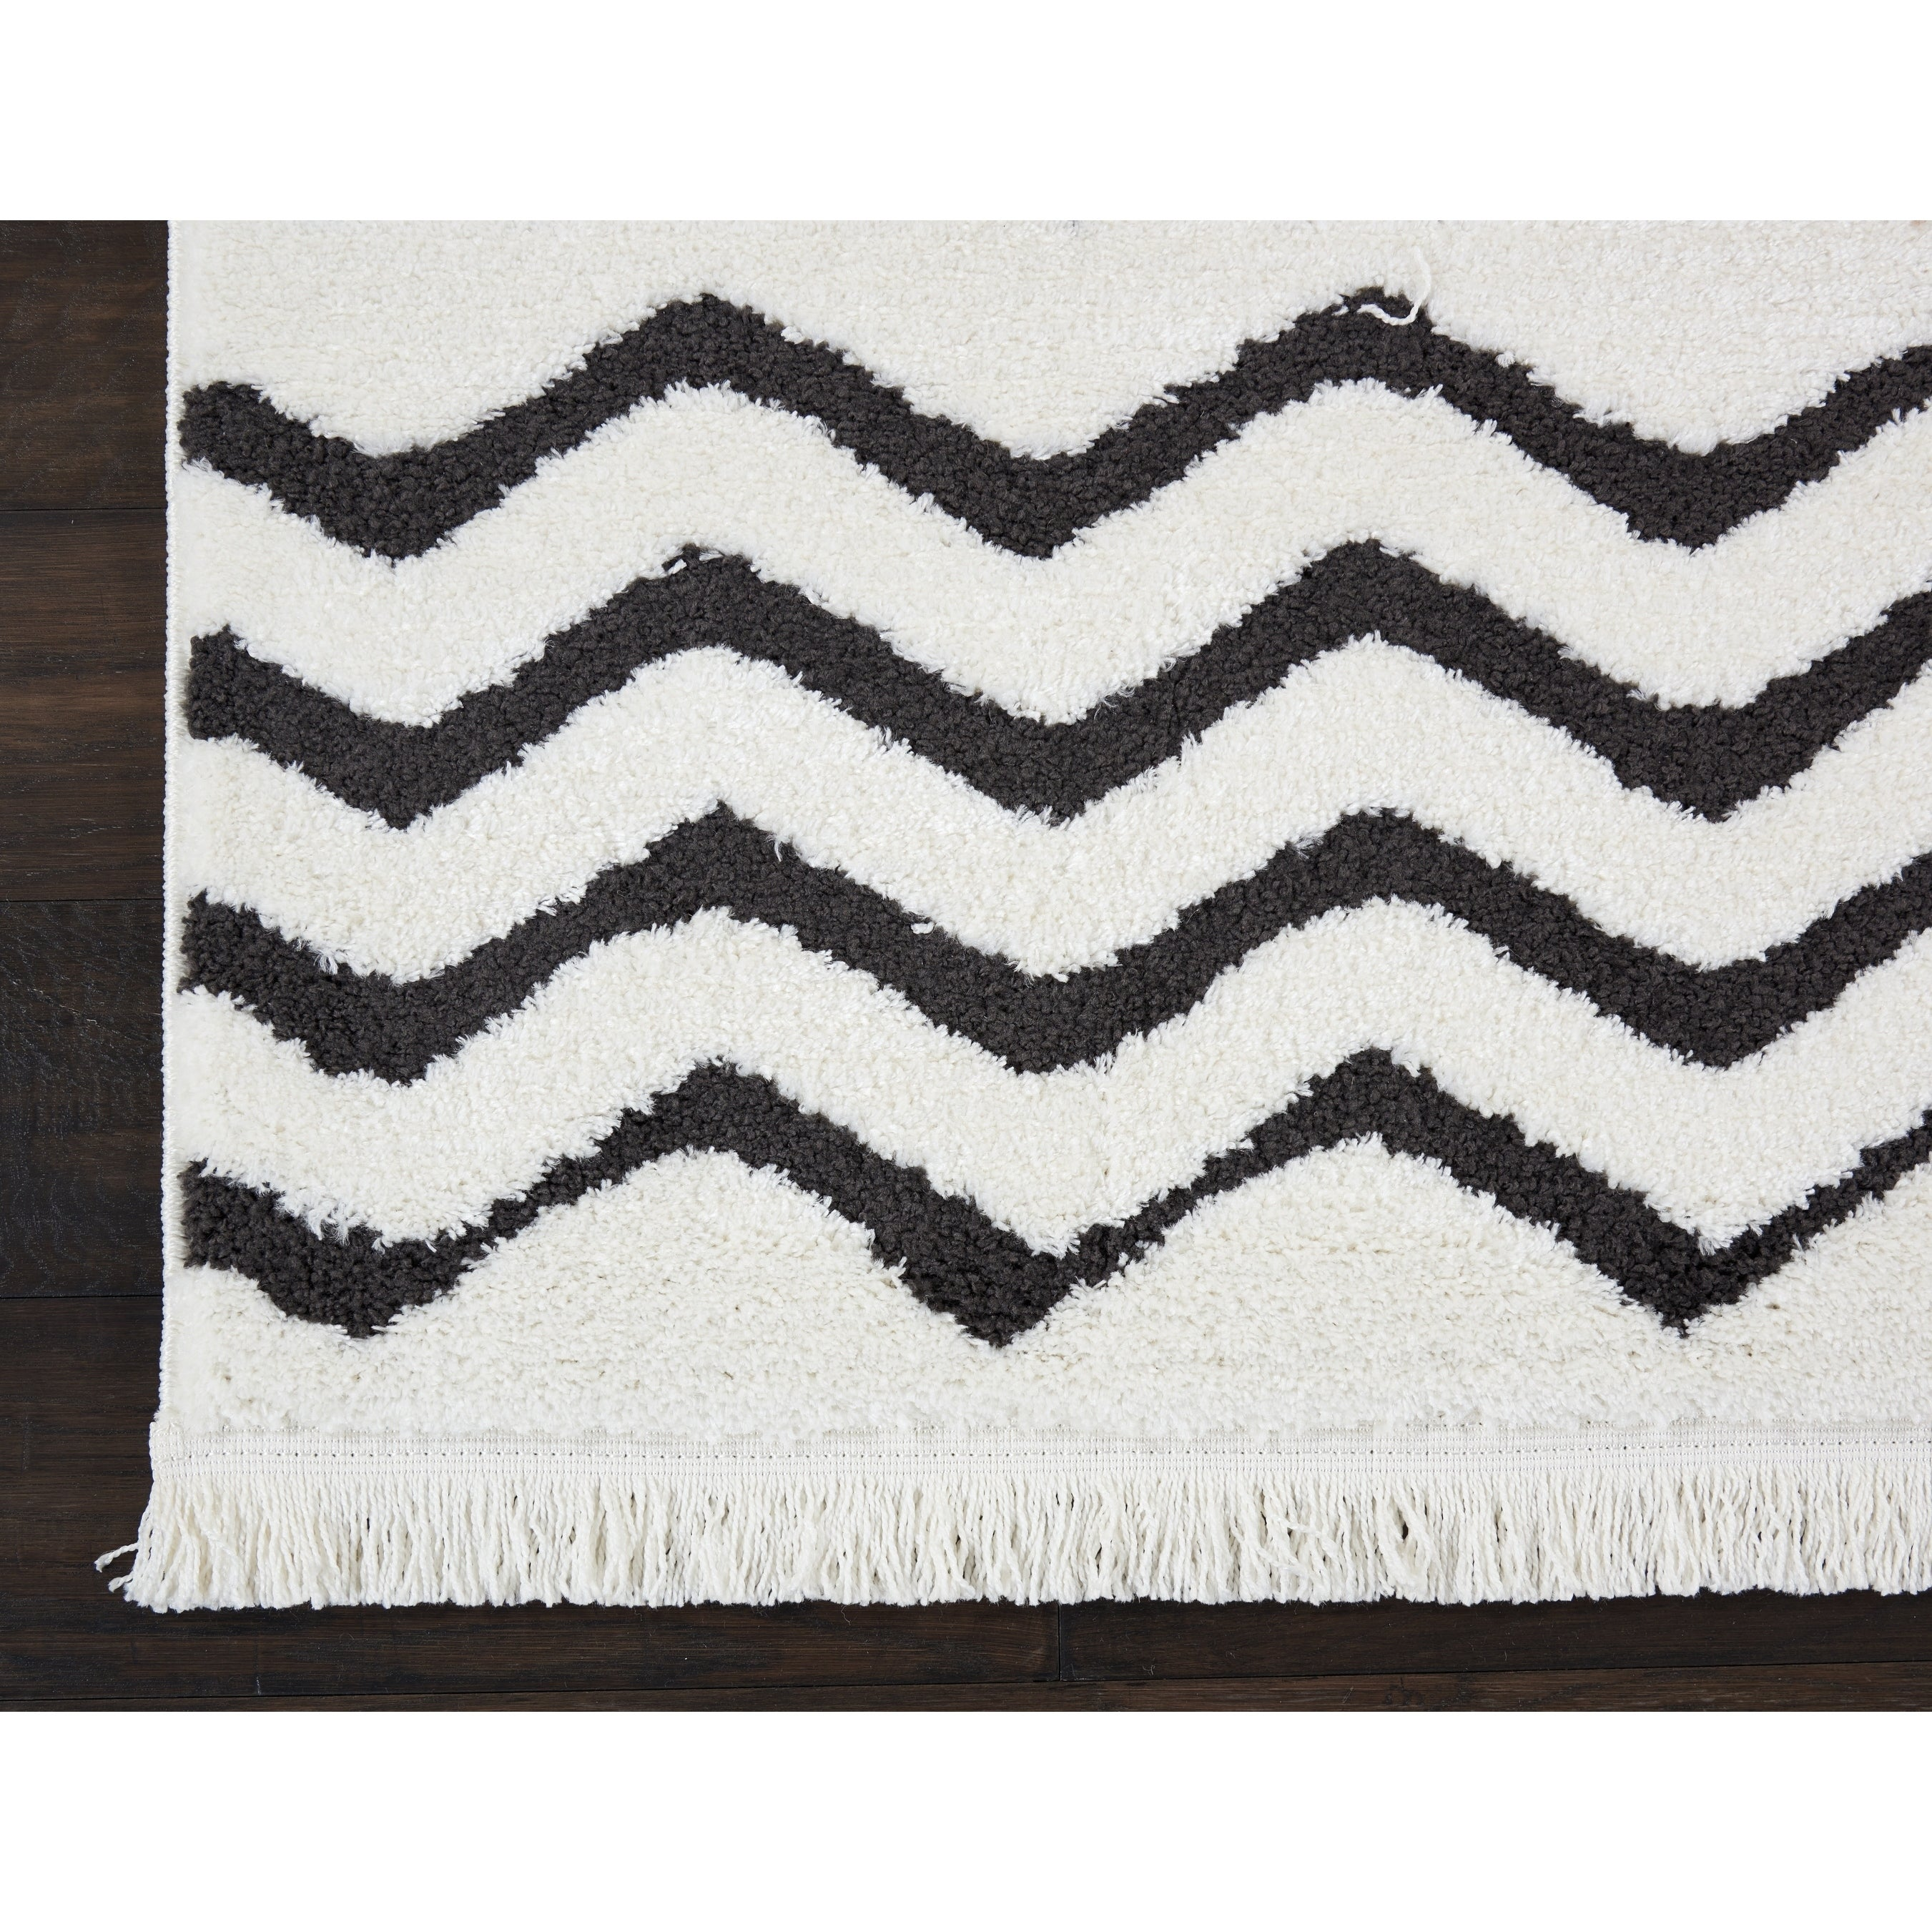 accent plush decor contemporary modern floral print stores room rug shag black aztec indoor living barrels rugs white gold jarvis for and area s bedroom